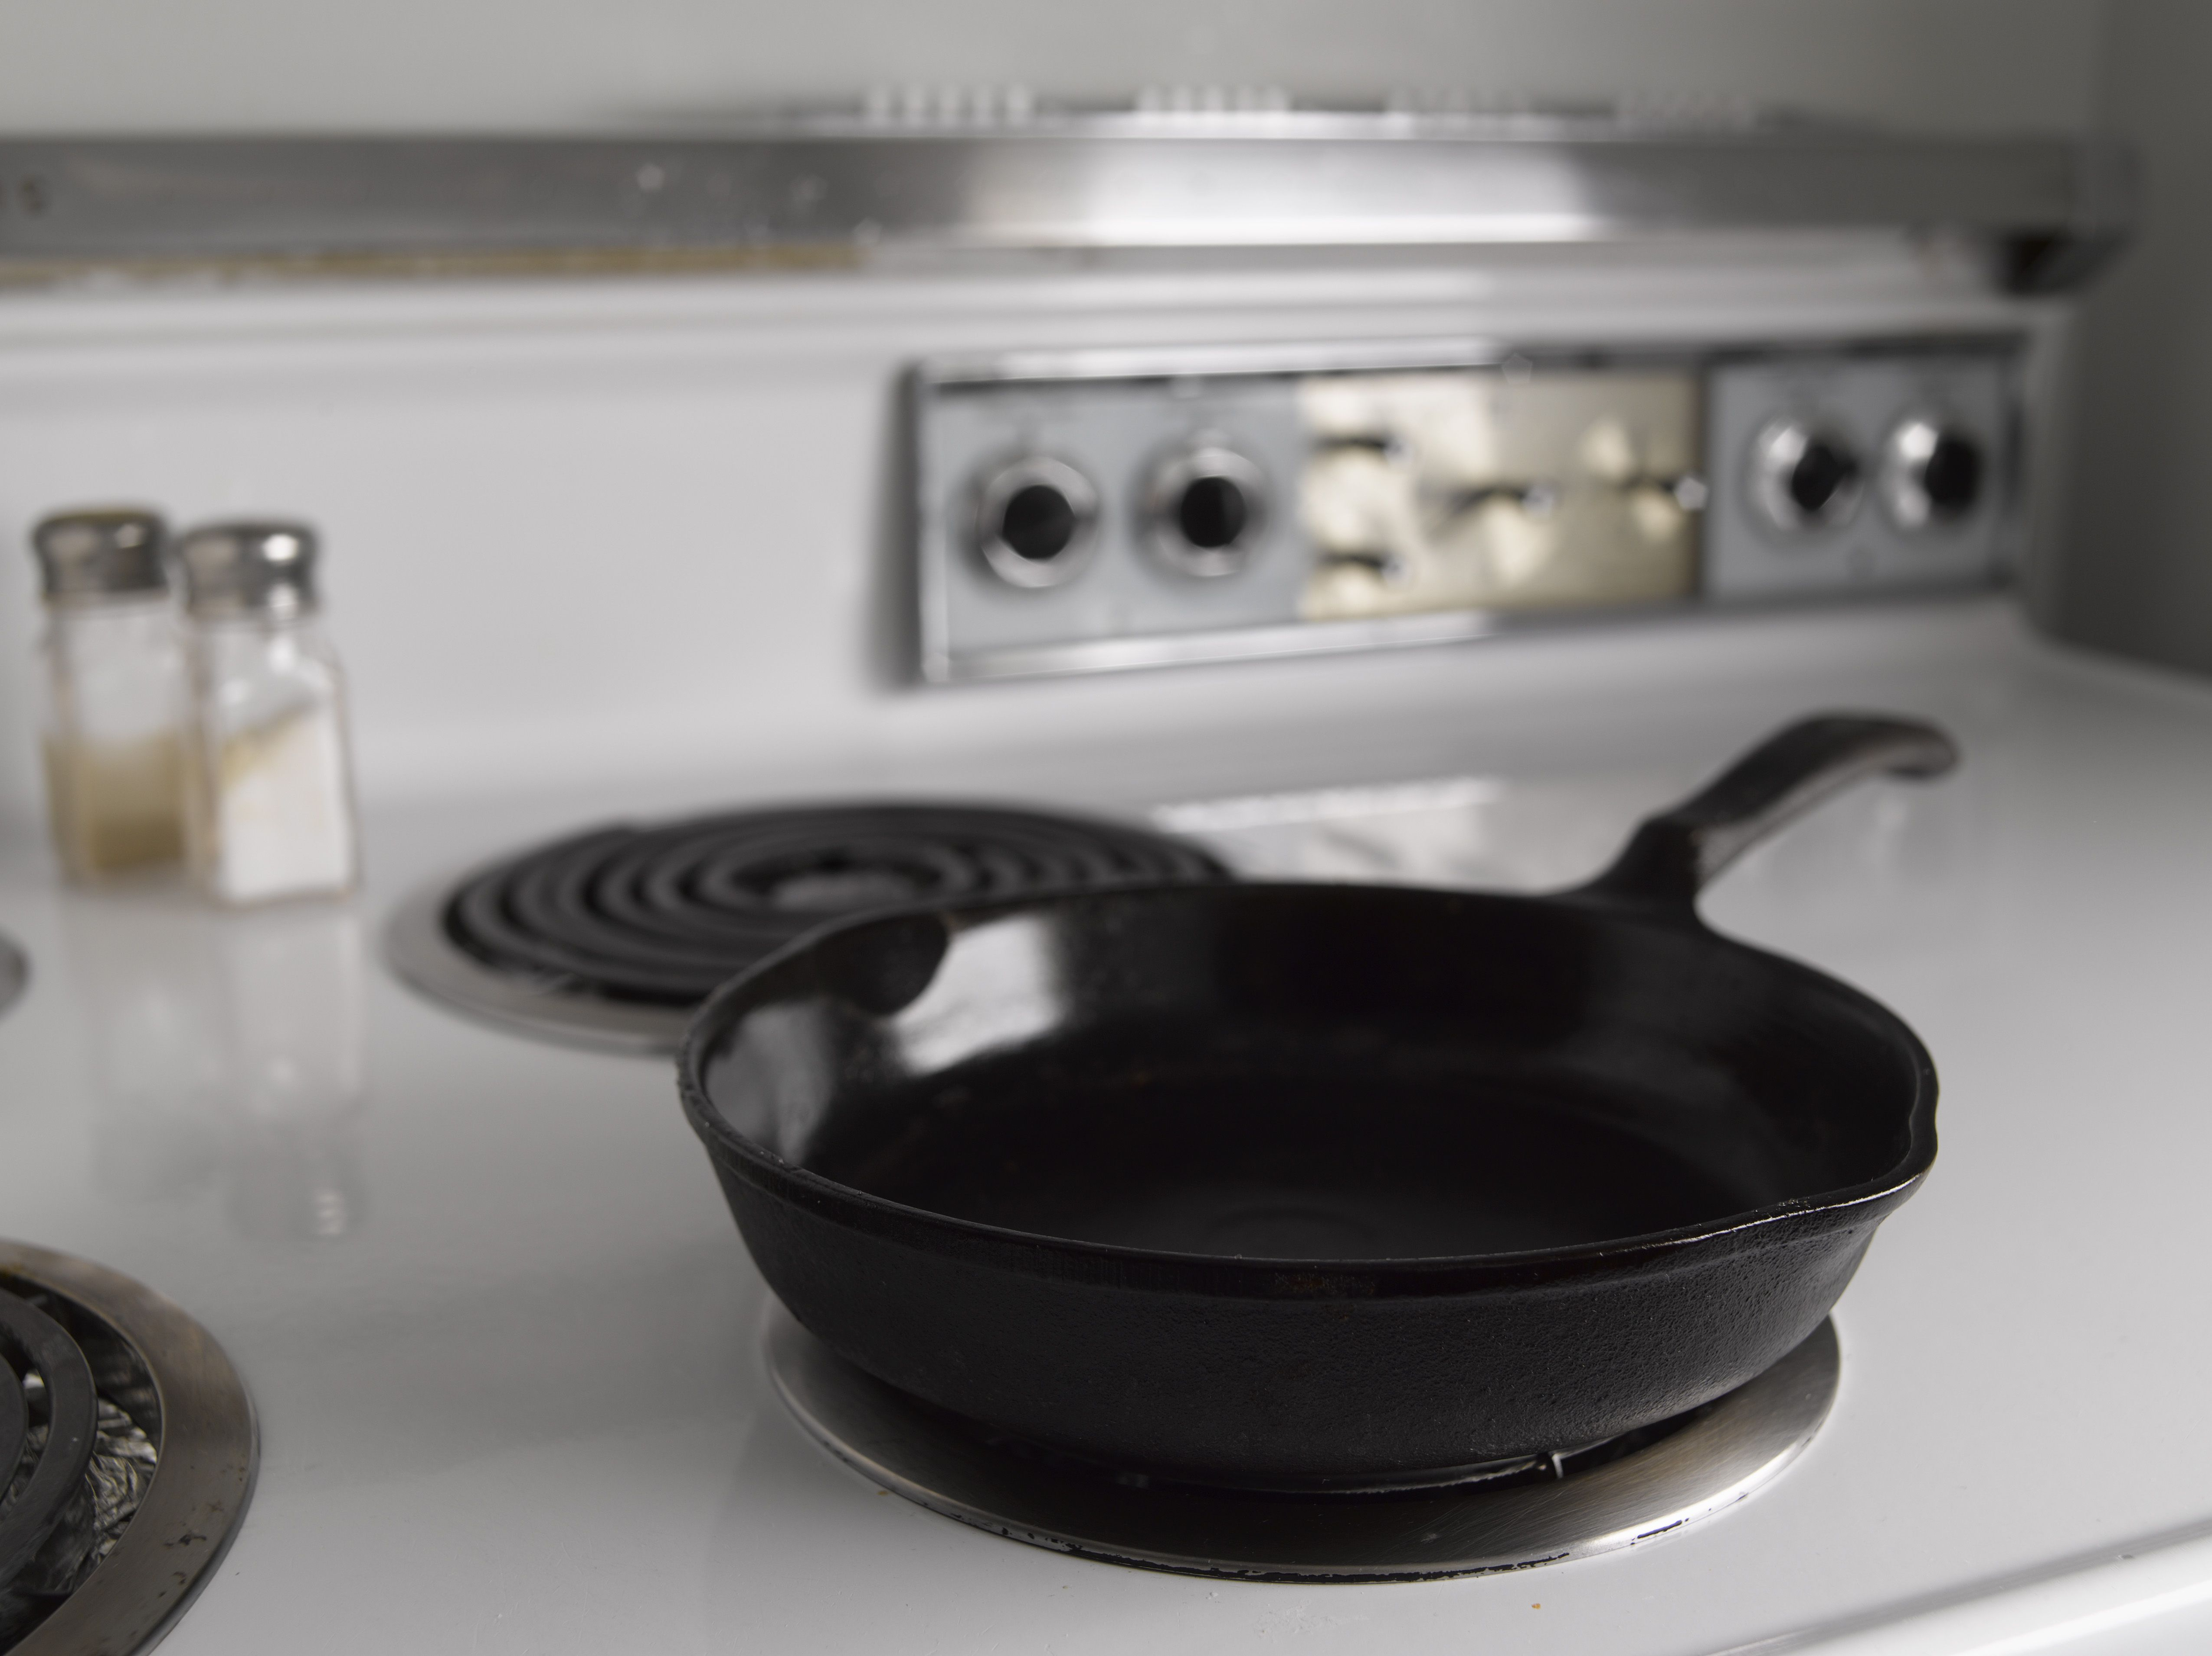 Frying pan on stovetop